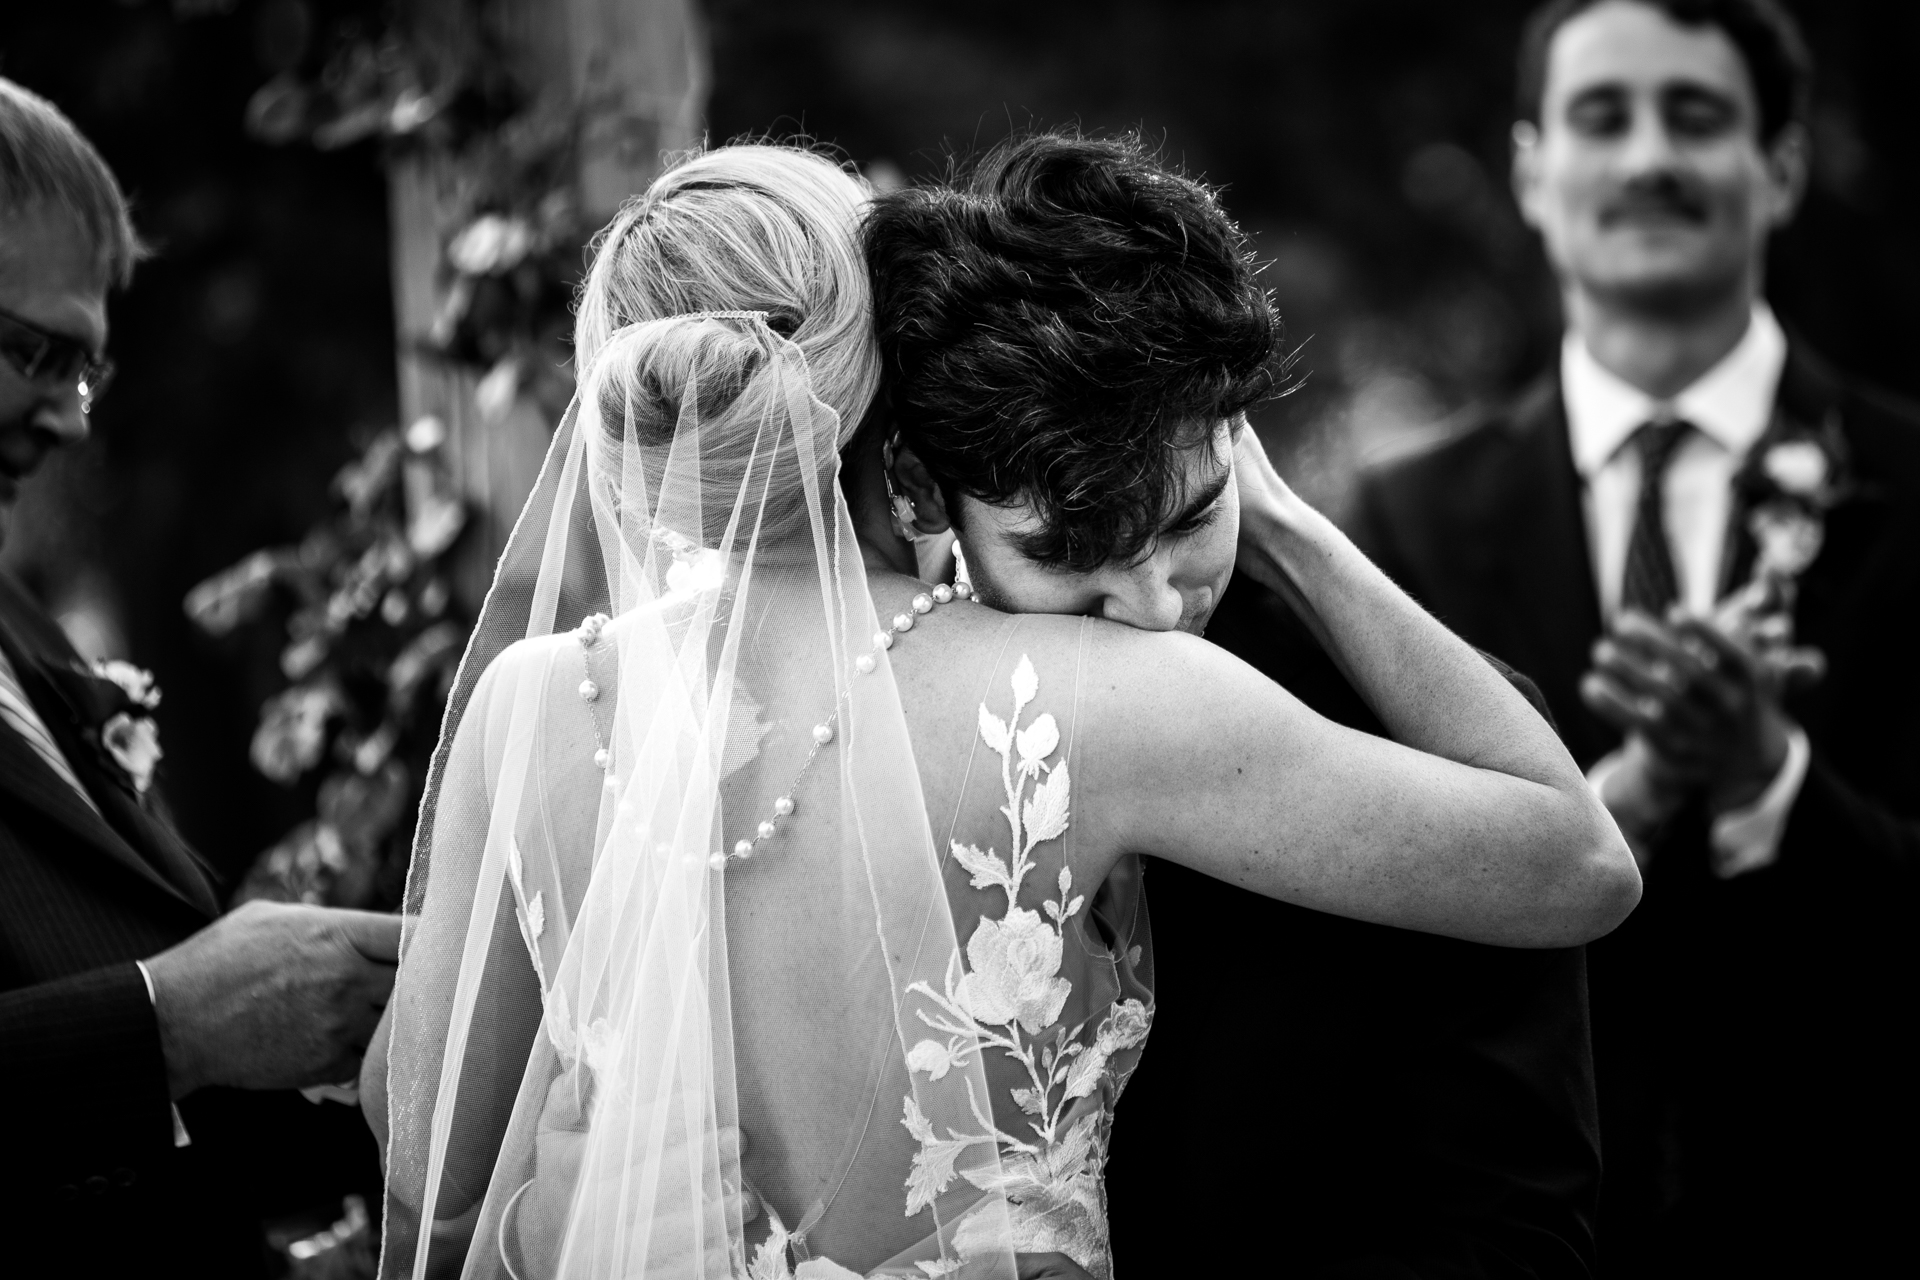 Best Wedding Photography in South of France | The groom was touched after the exchange of alliances